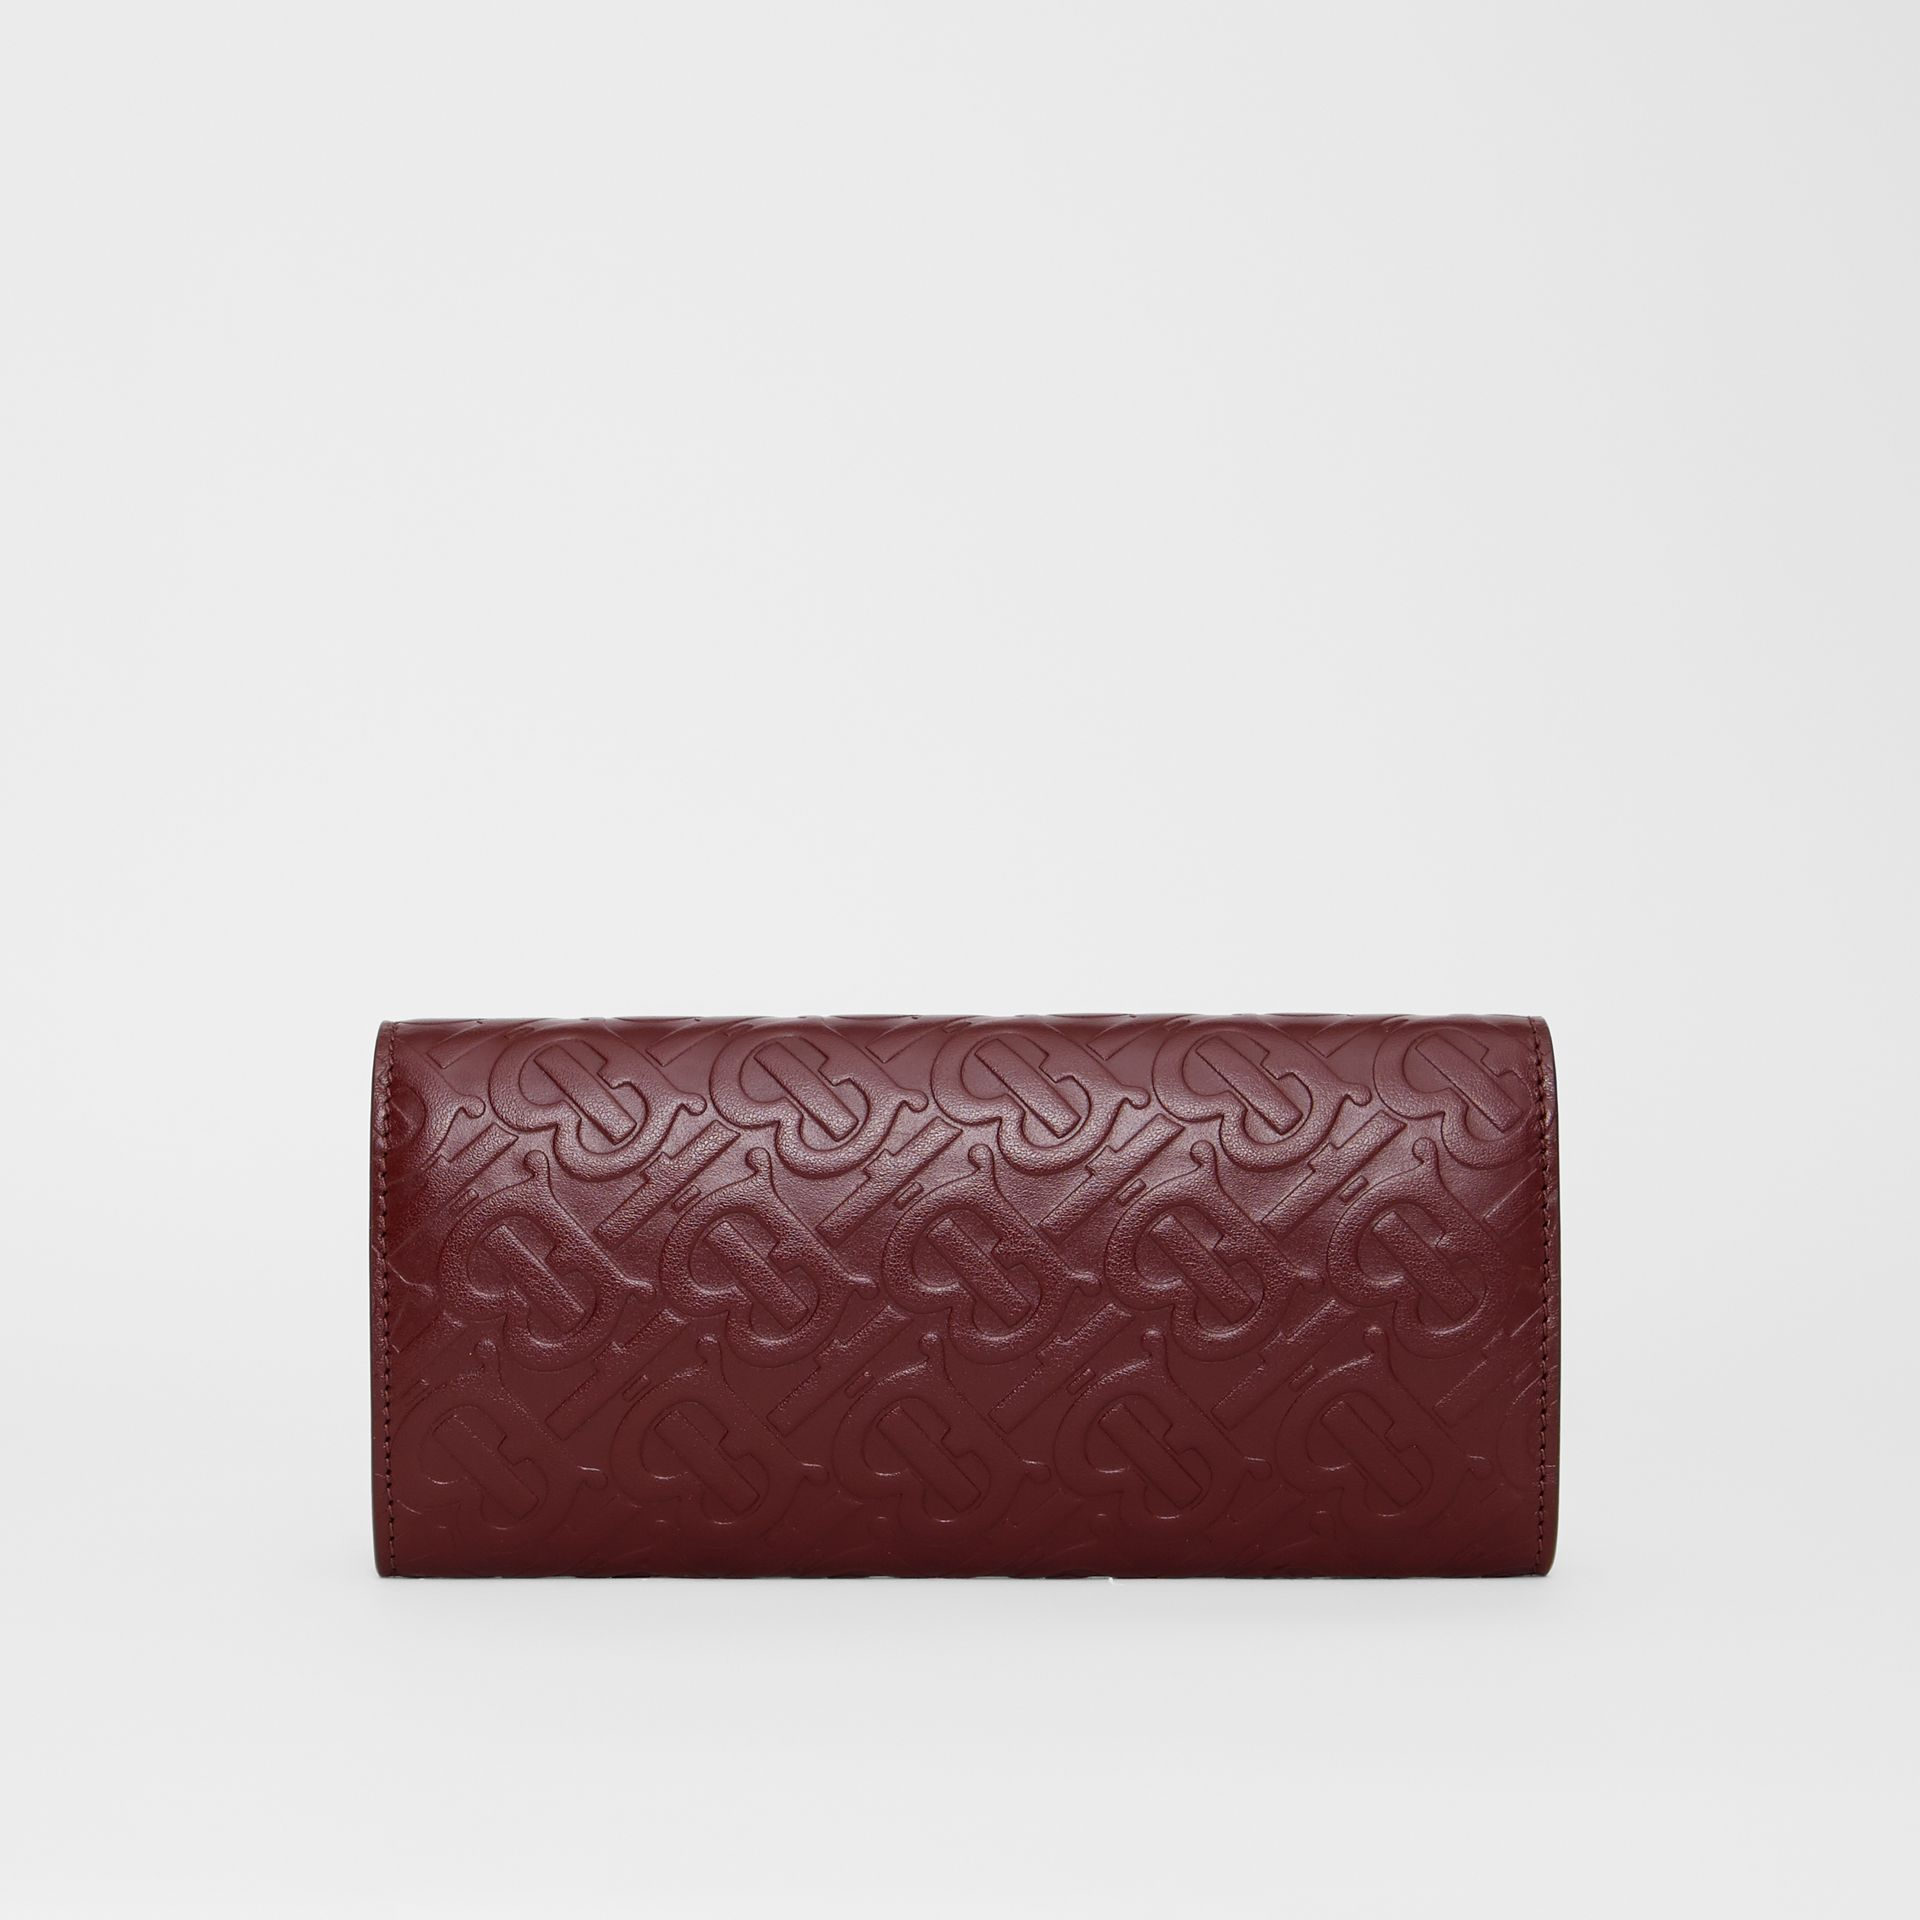 Portefeuille continental en cuir Monogram (Oxblood) - Femme | Burberry - photo de la galerie 5